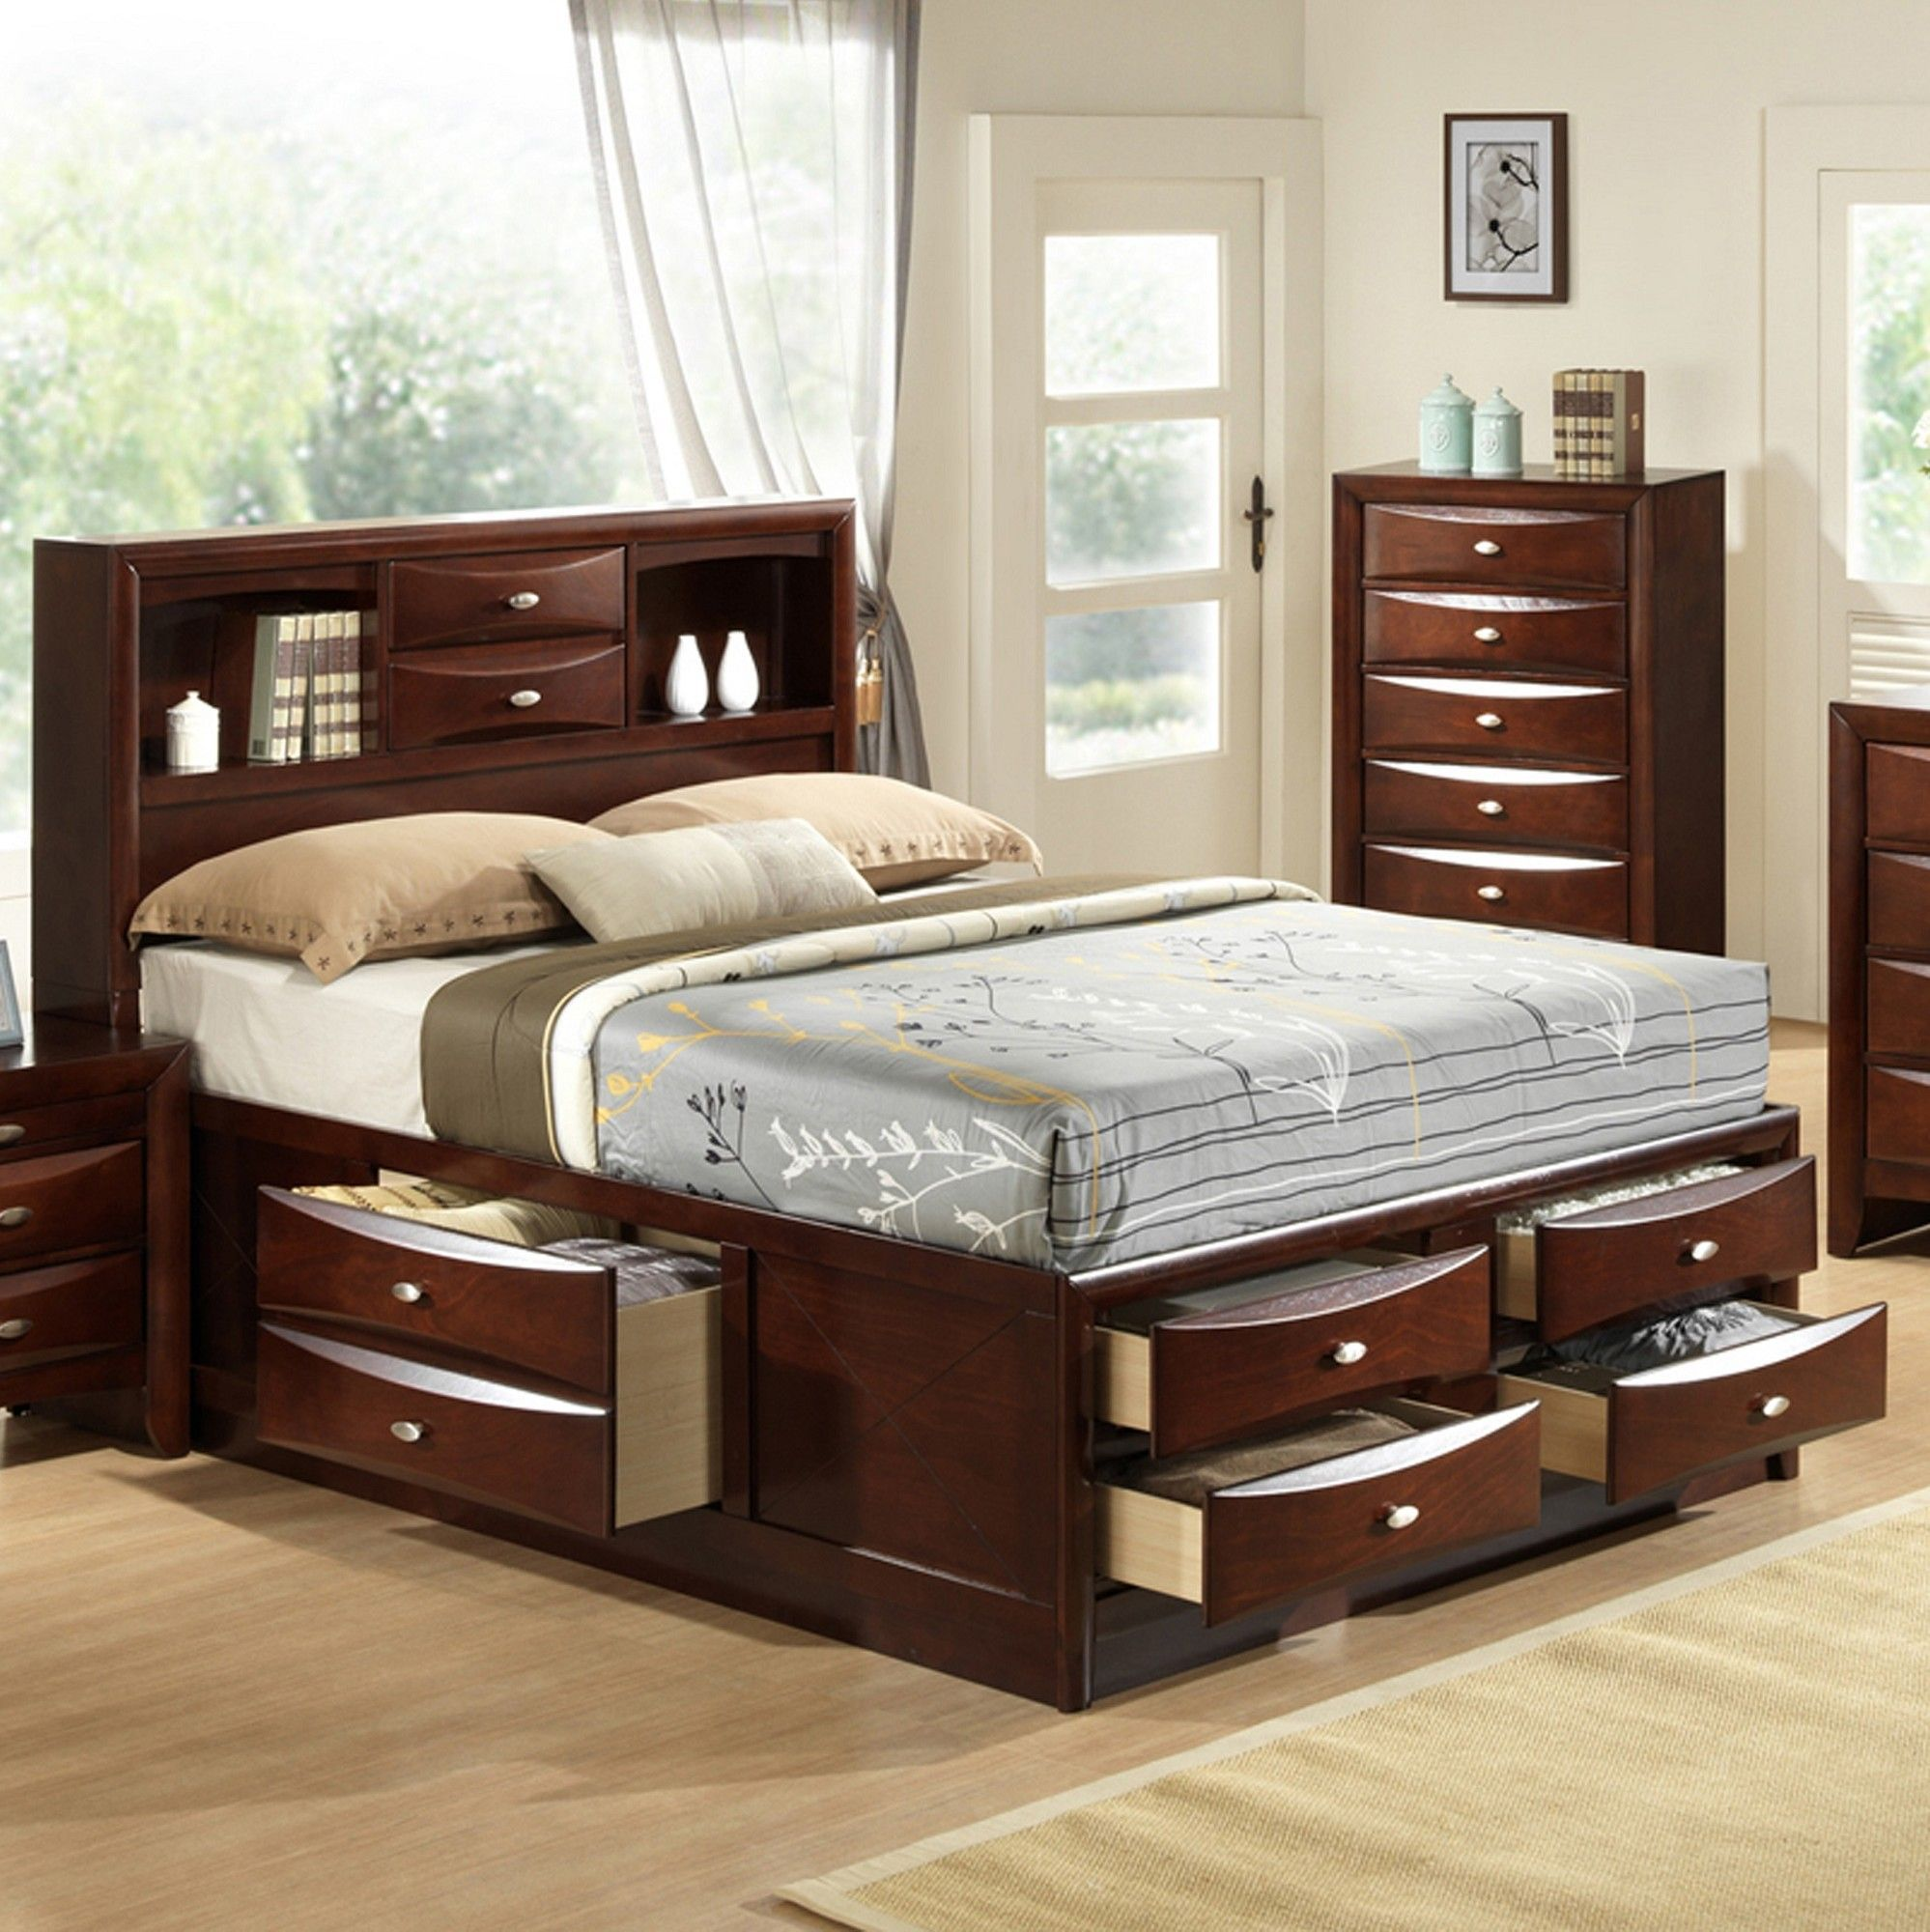 features 2 drawers and 2 open storage s for the headboard 6